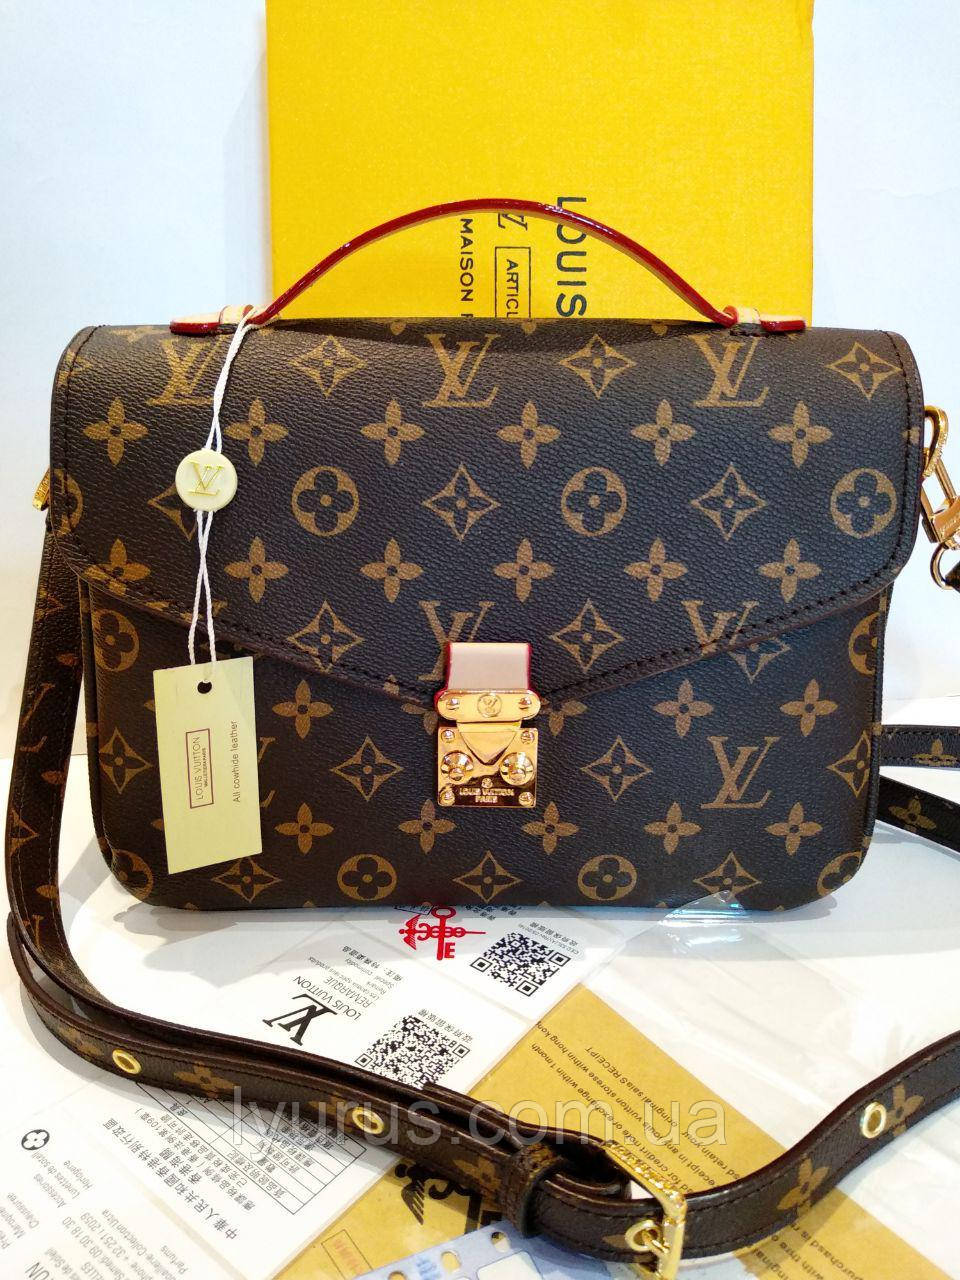 Женская сумка Louis Vuitton Pochette Metis Monogram